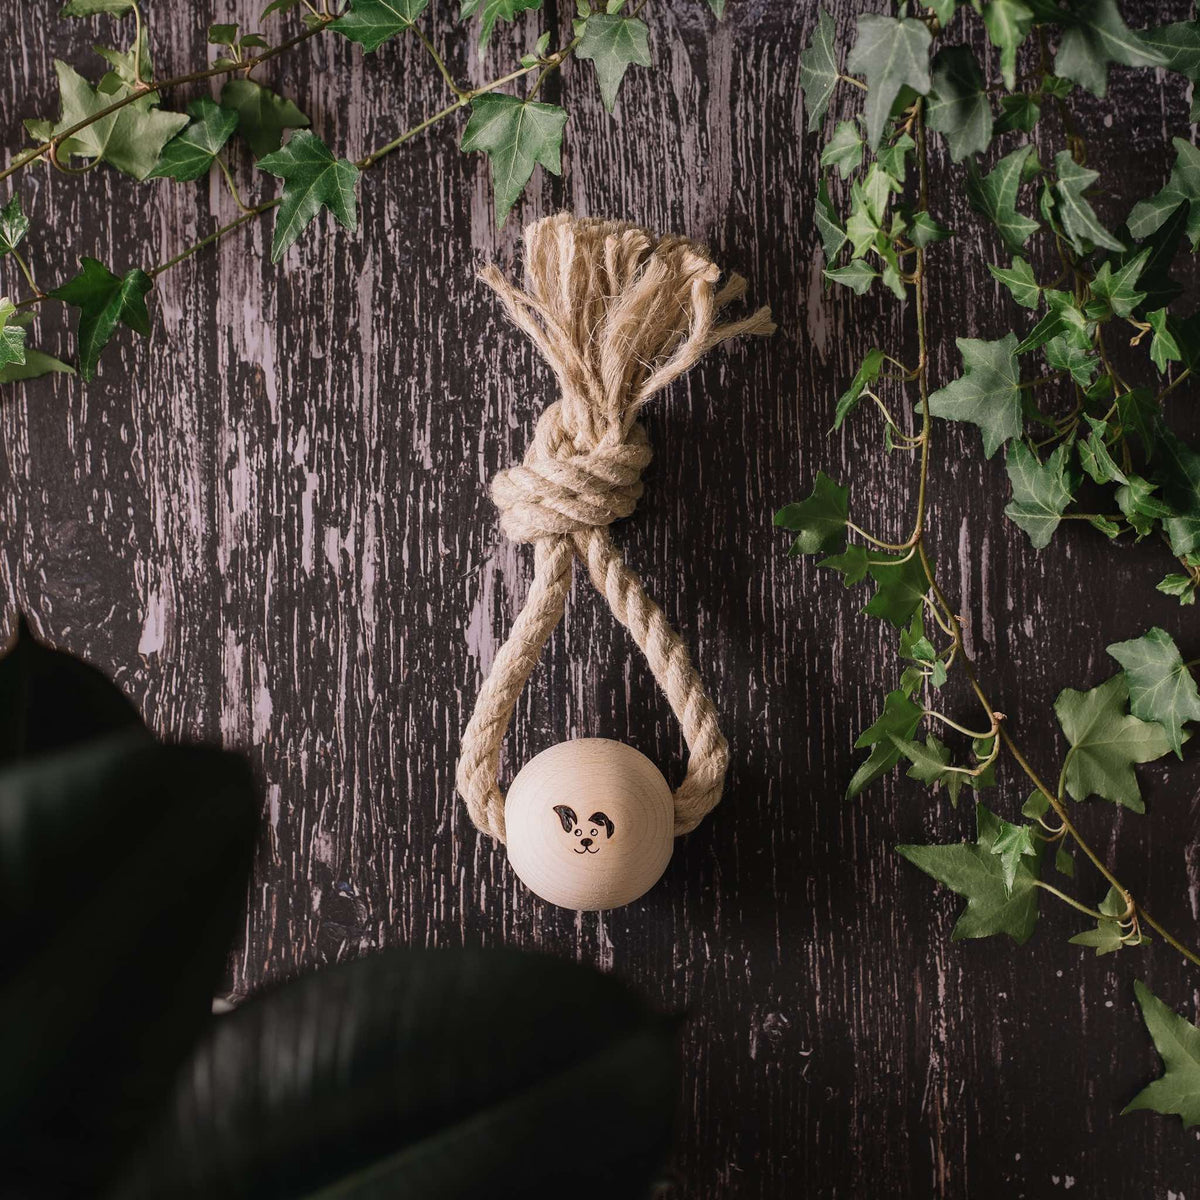 Top Knot - Smug Mutts Natural Hemp Rope and Beech Wood Dog Toy, Ring Shaped Holding the Ball in Place, Top View, Natural and Eco Friendly Dog Toy